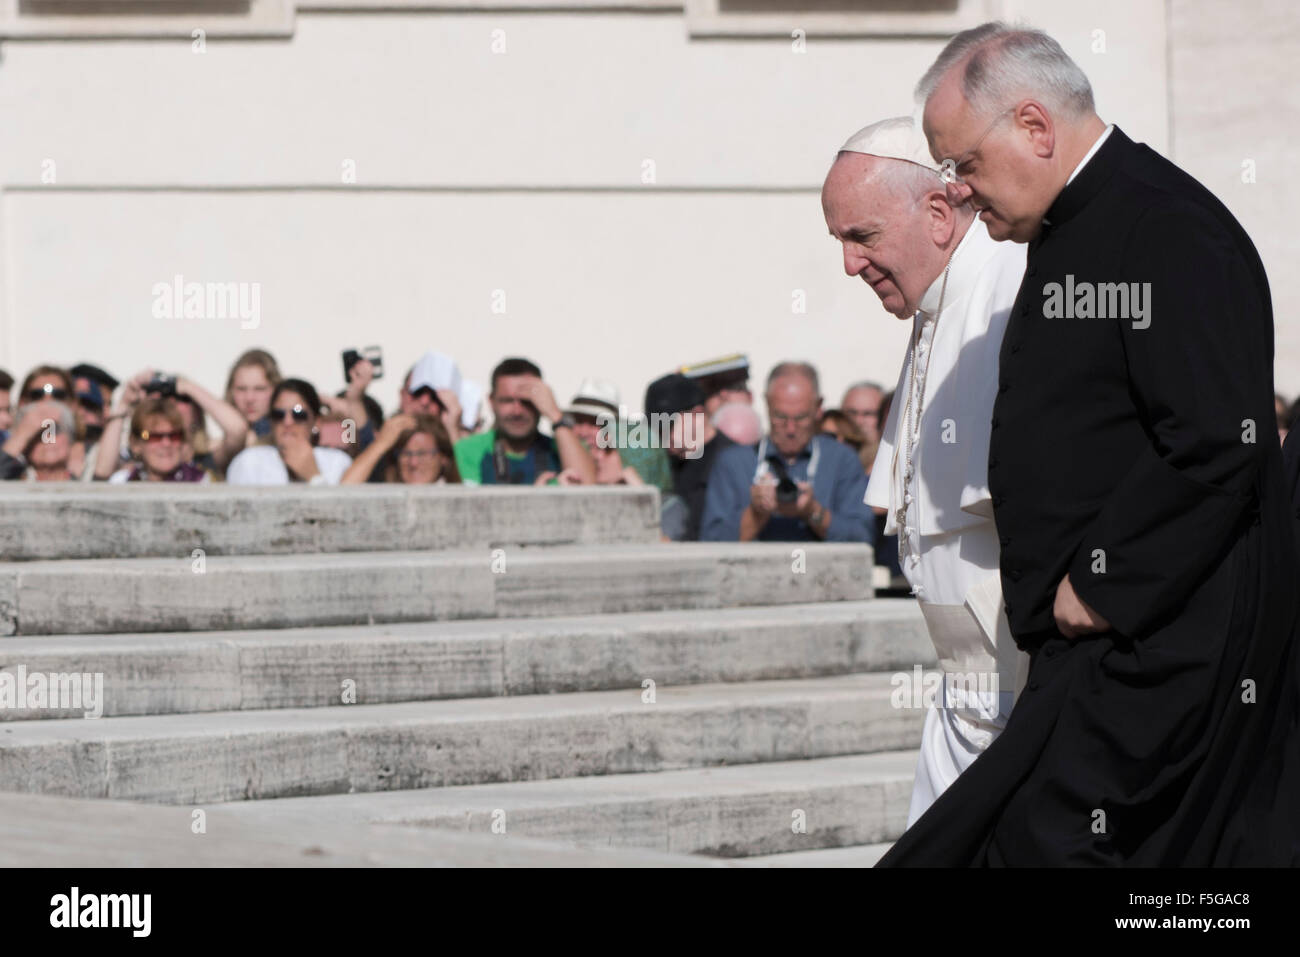 Vatican. 4th November, 2015. Pope Francis arrives for his weekly general audience in St. Peter's Square at the - Stock Image